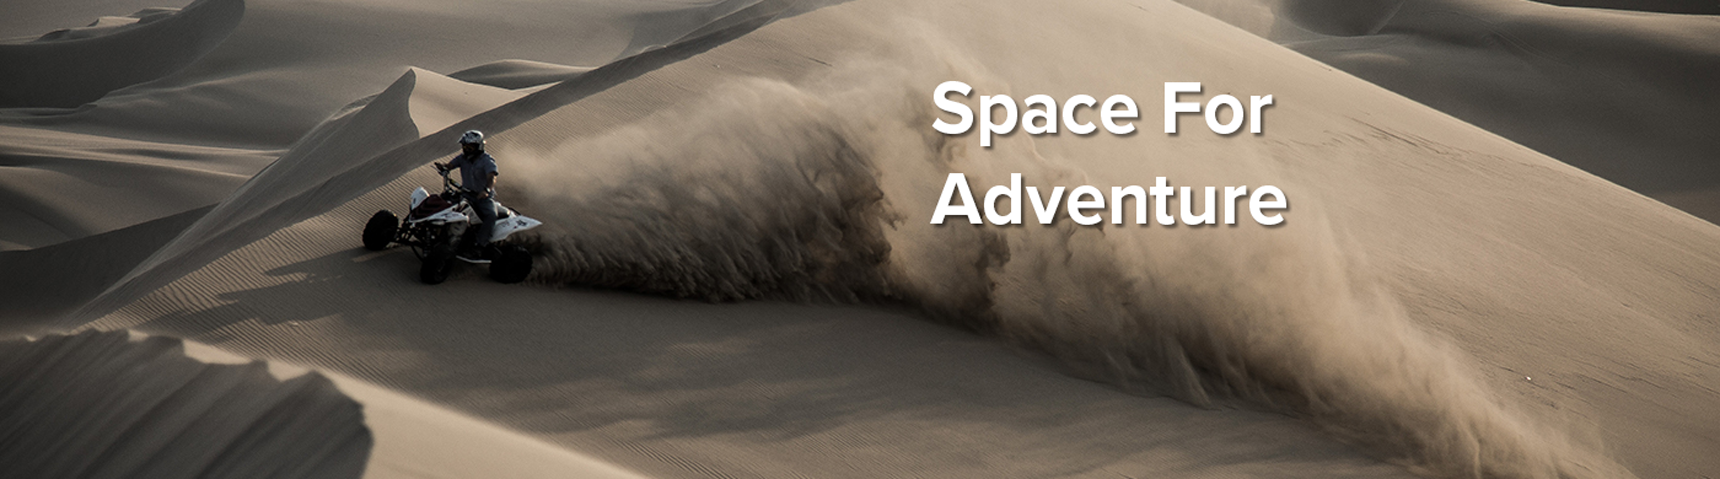 Space For Adventure